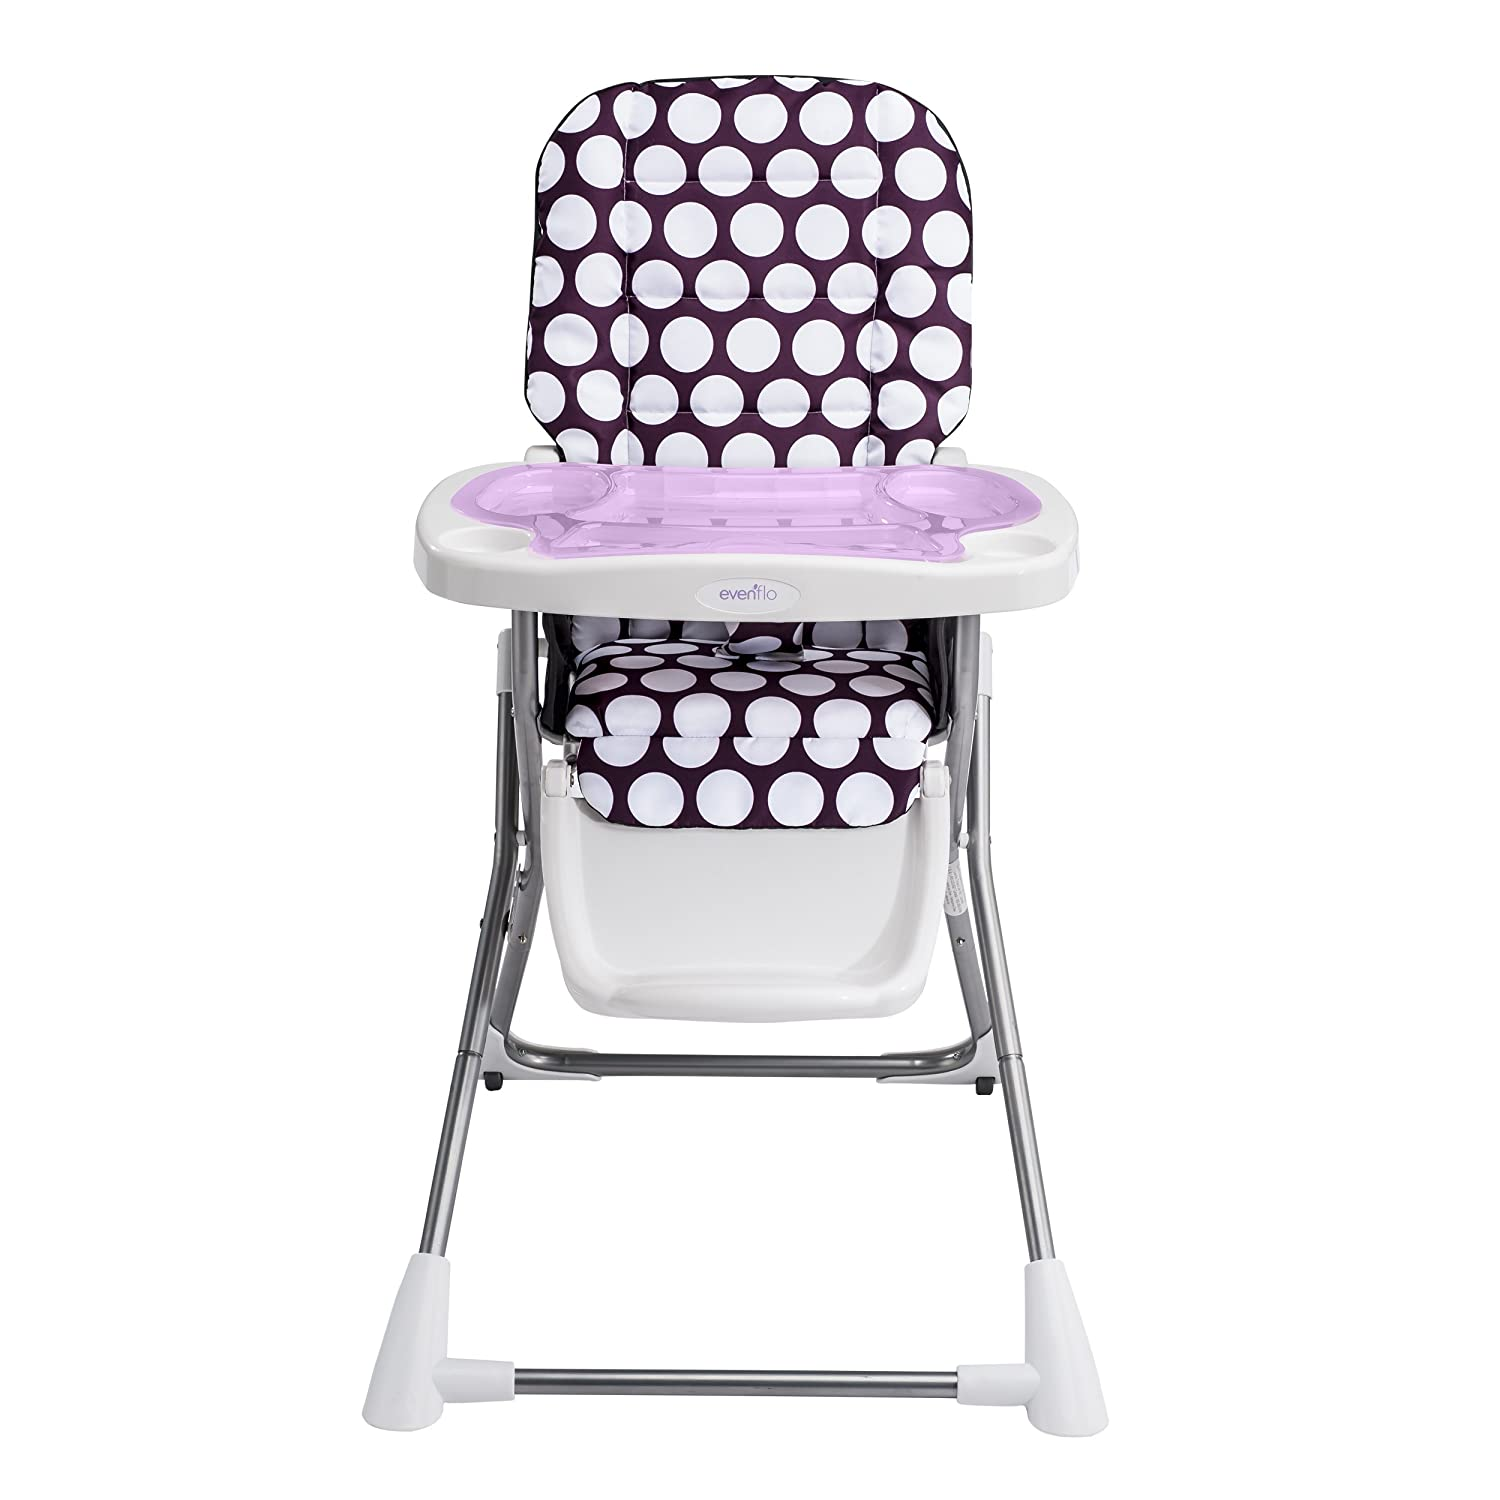 Evenflo Compact Fold High Chair Graco Blossom 4 In 1 High Chair Baby Gear And Accessories